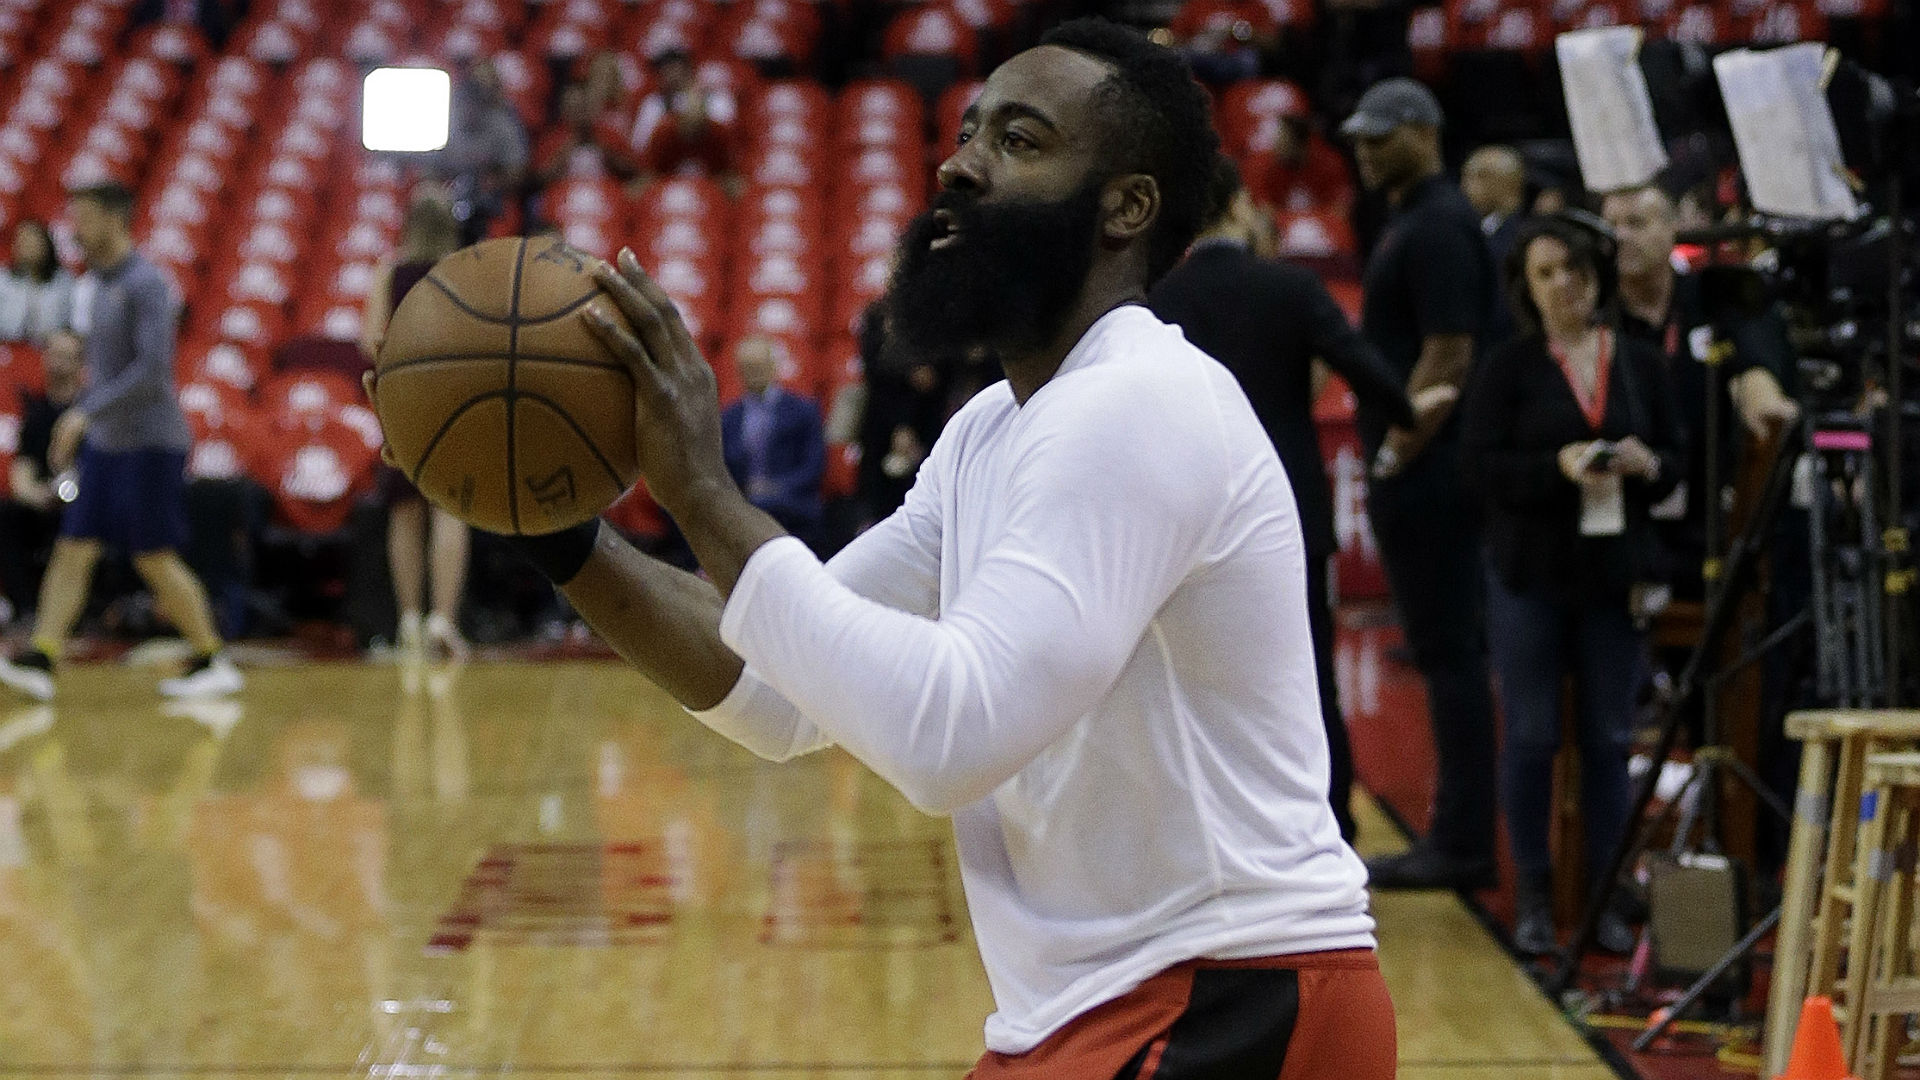 Rockets star Harden: I want to be one of those basketball players you won't forget